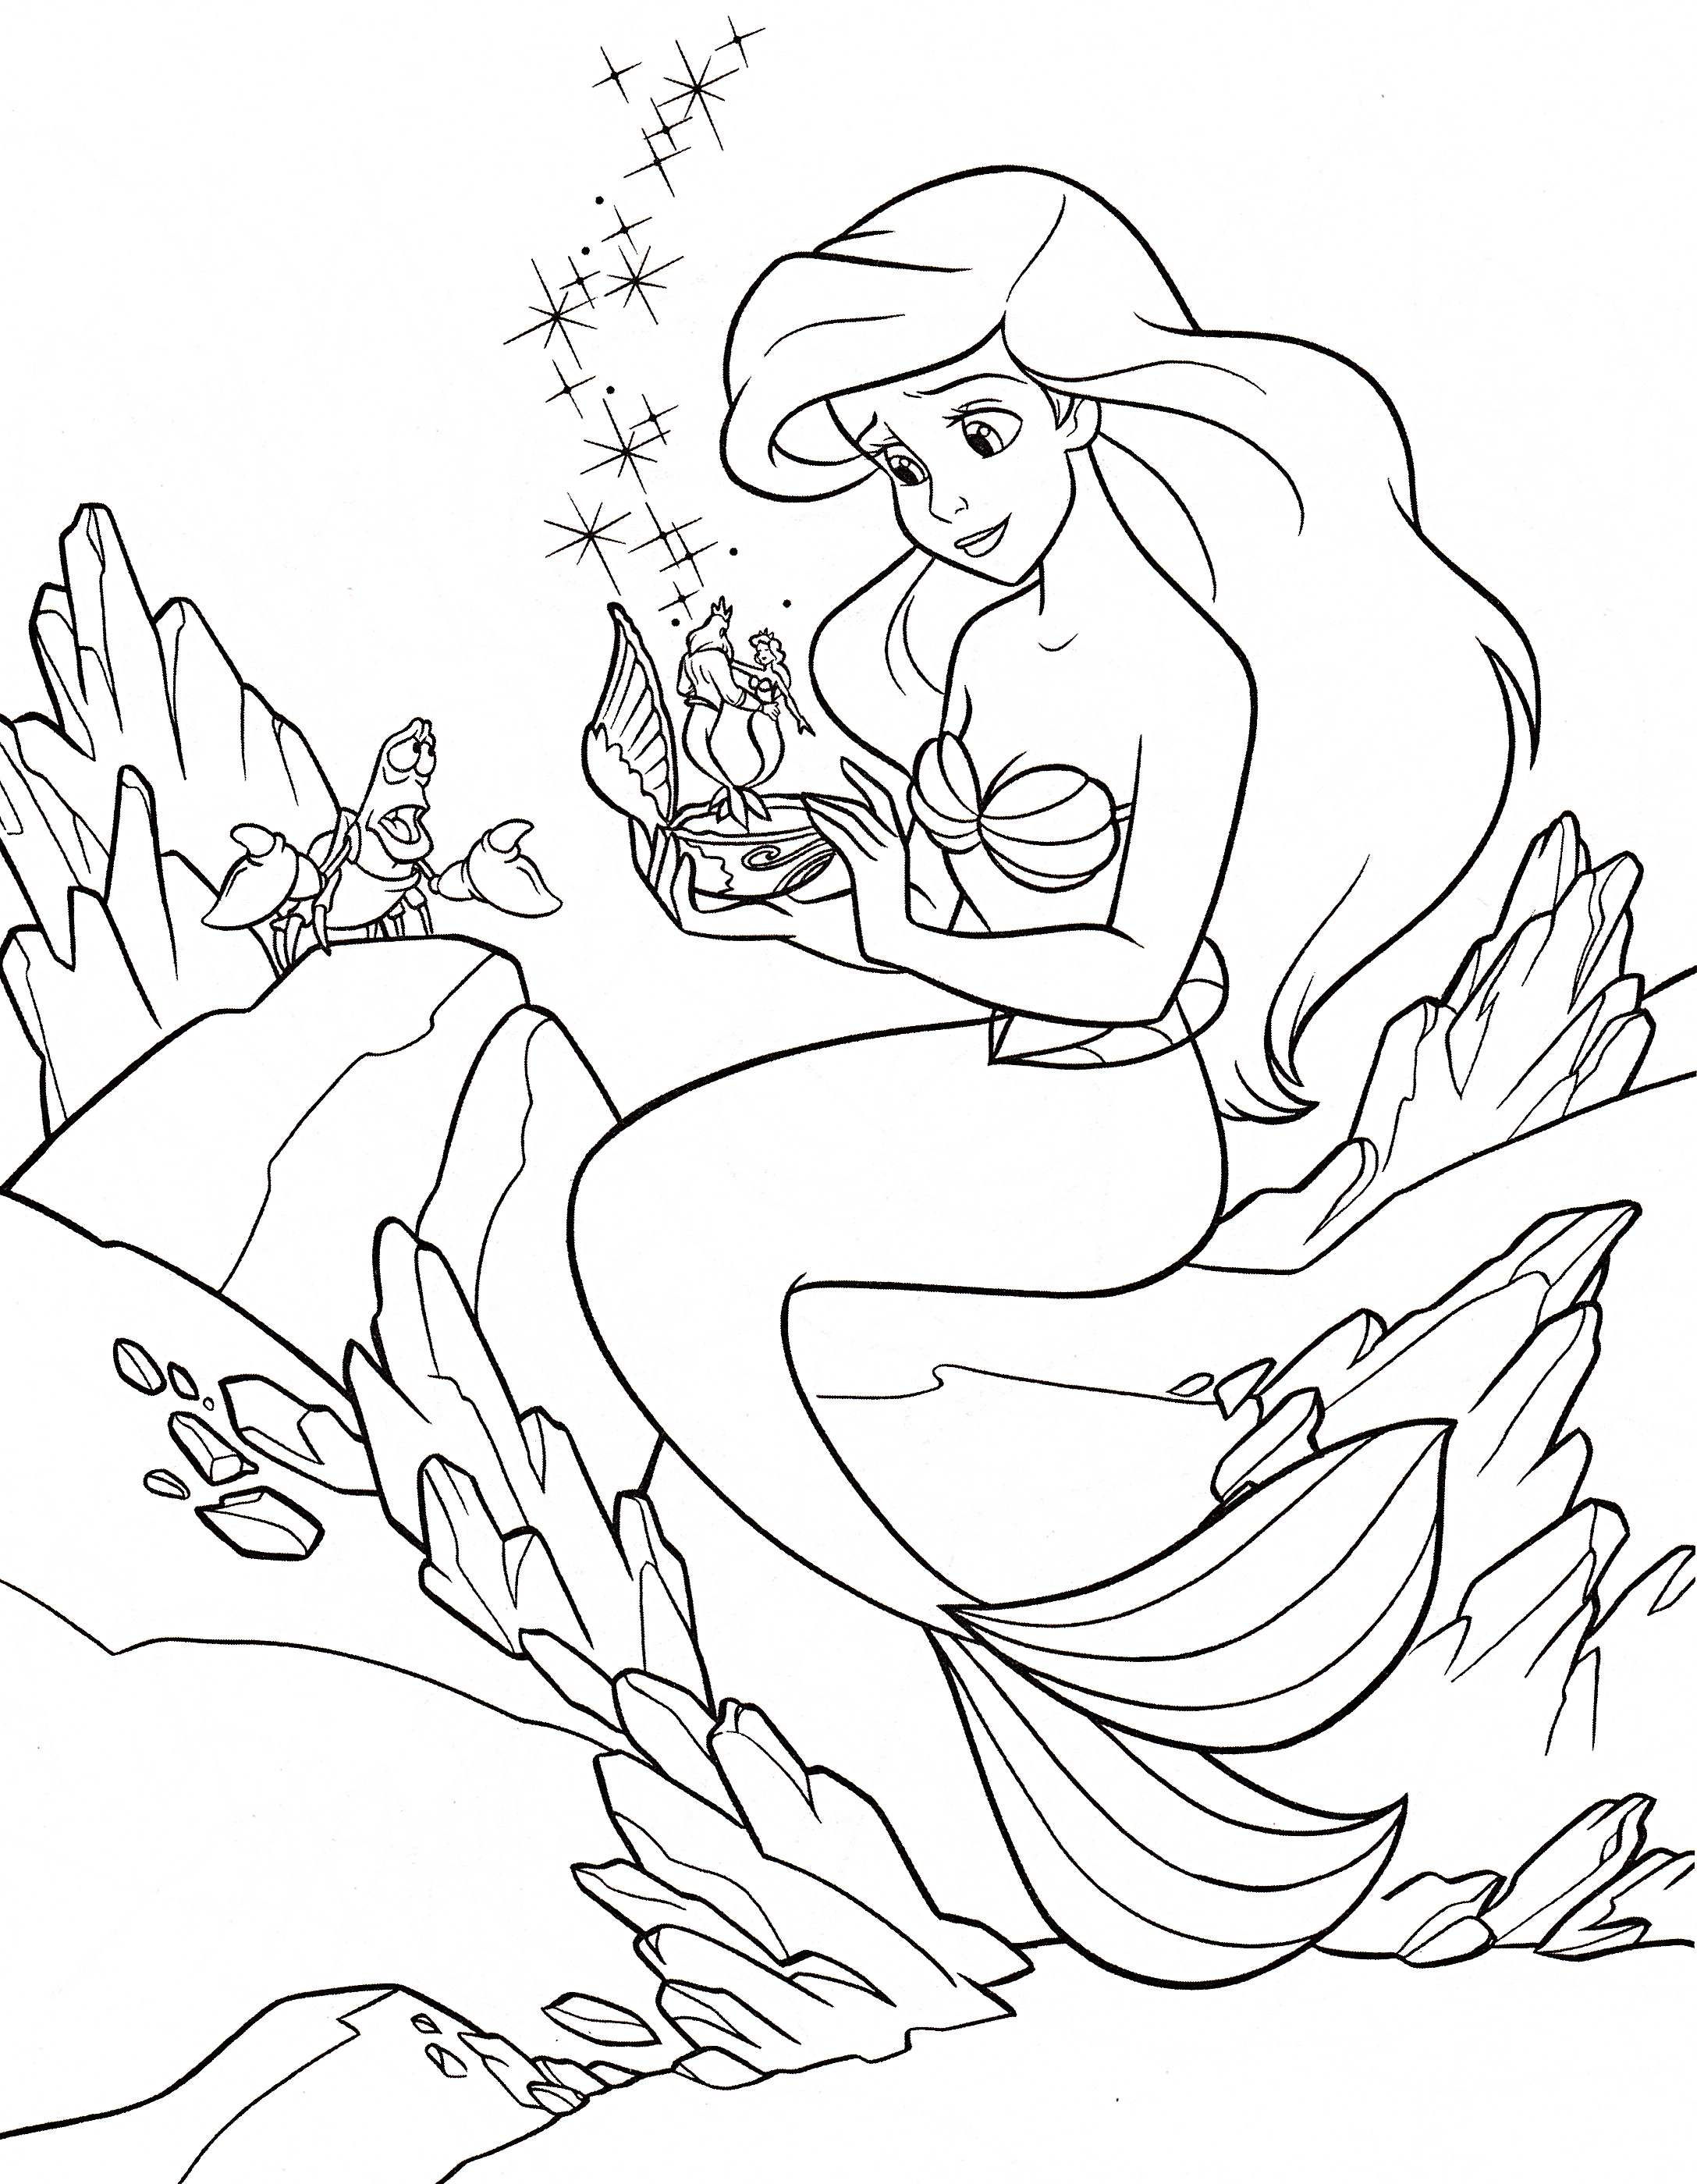 Coloring Pages Walt Disney : Walt disney coloring pages sebastian princess ariel